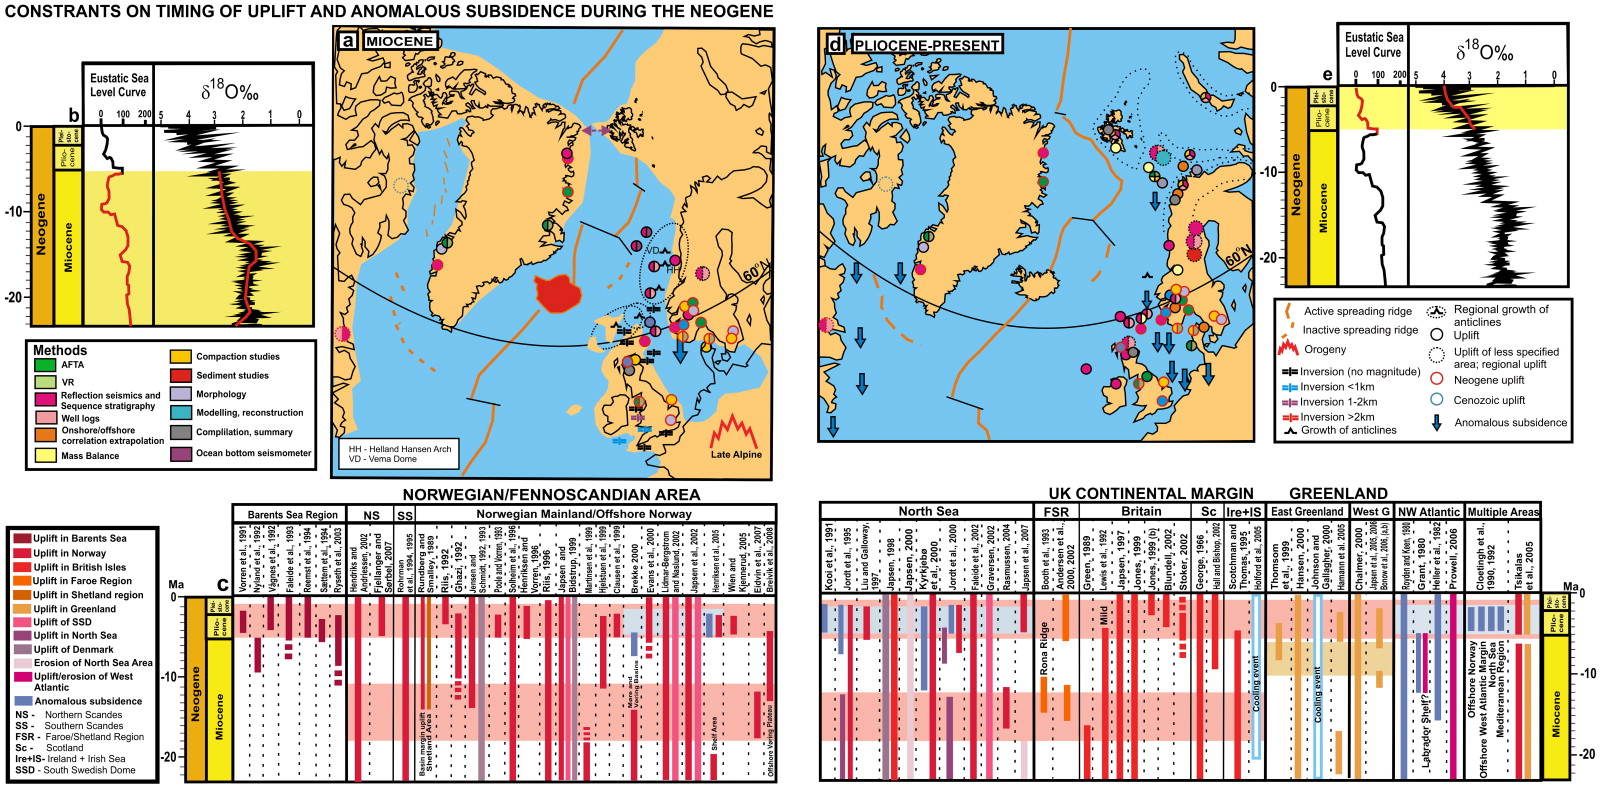 Cenozoic uplift and subsidence in the north atlantic region compilation of studies reporting uplift and subsidence during the miocene also includes studies constraining timing to be neogene red circle sciox Choice Image